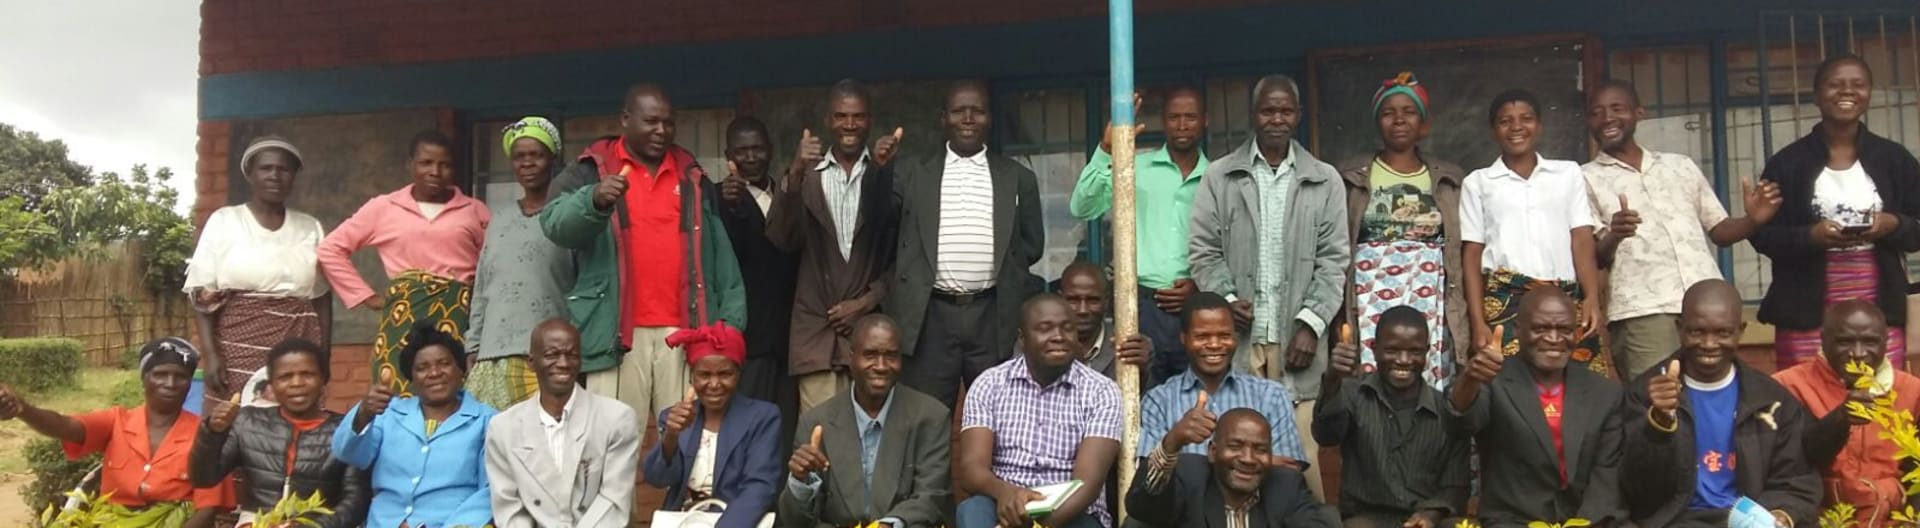 Malawi coffee group picture